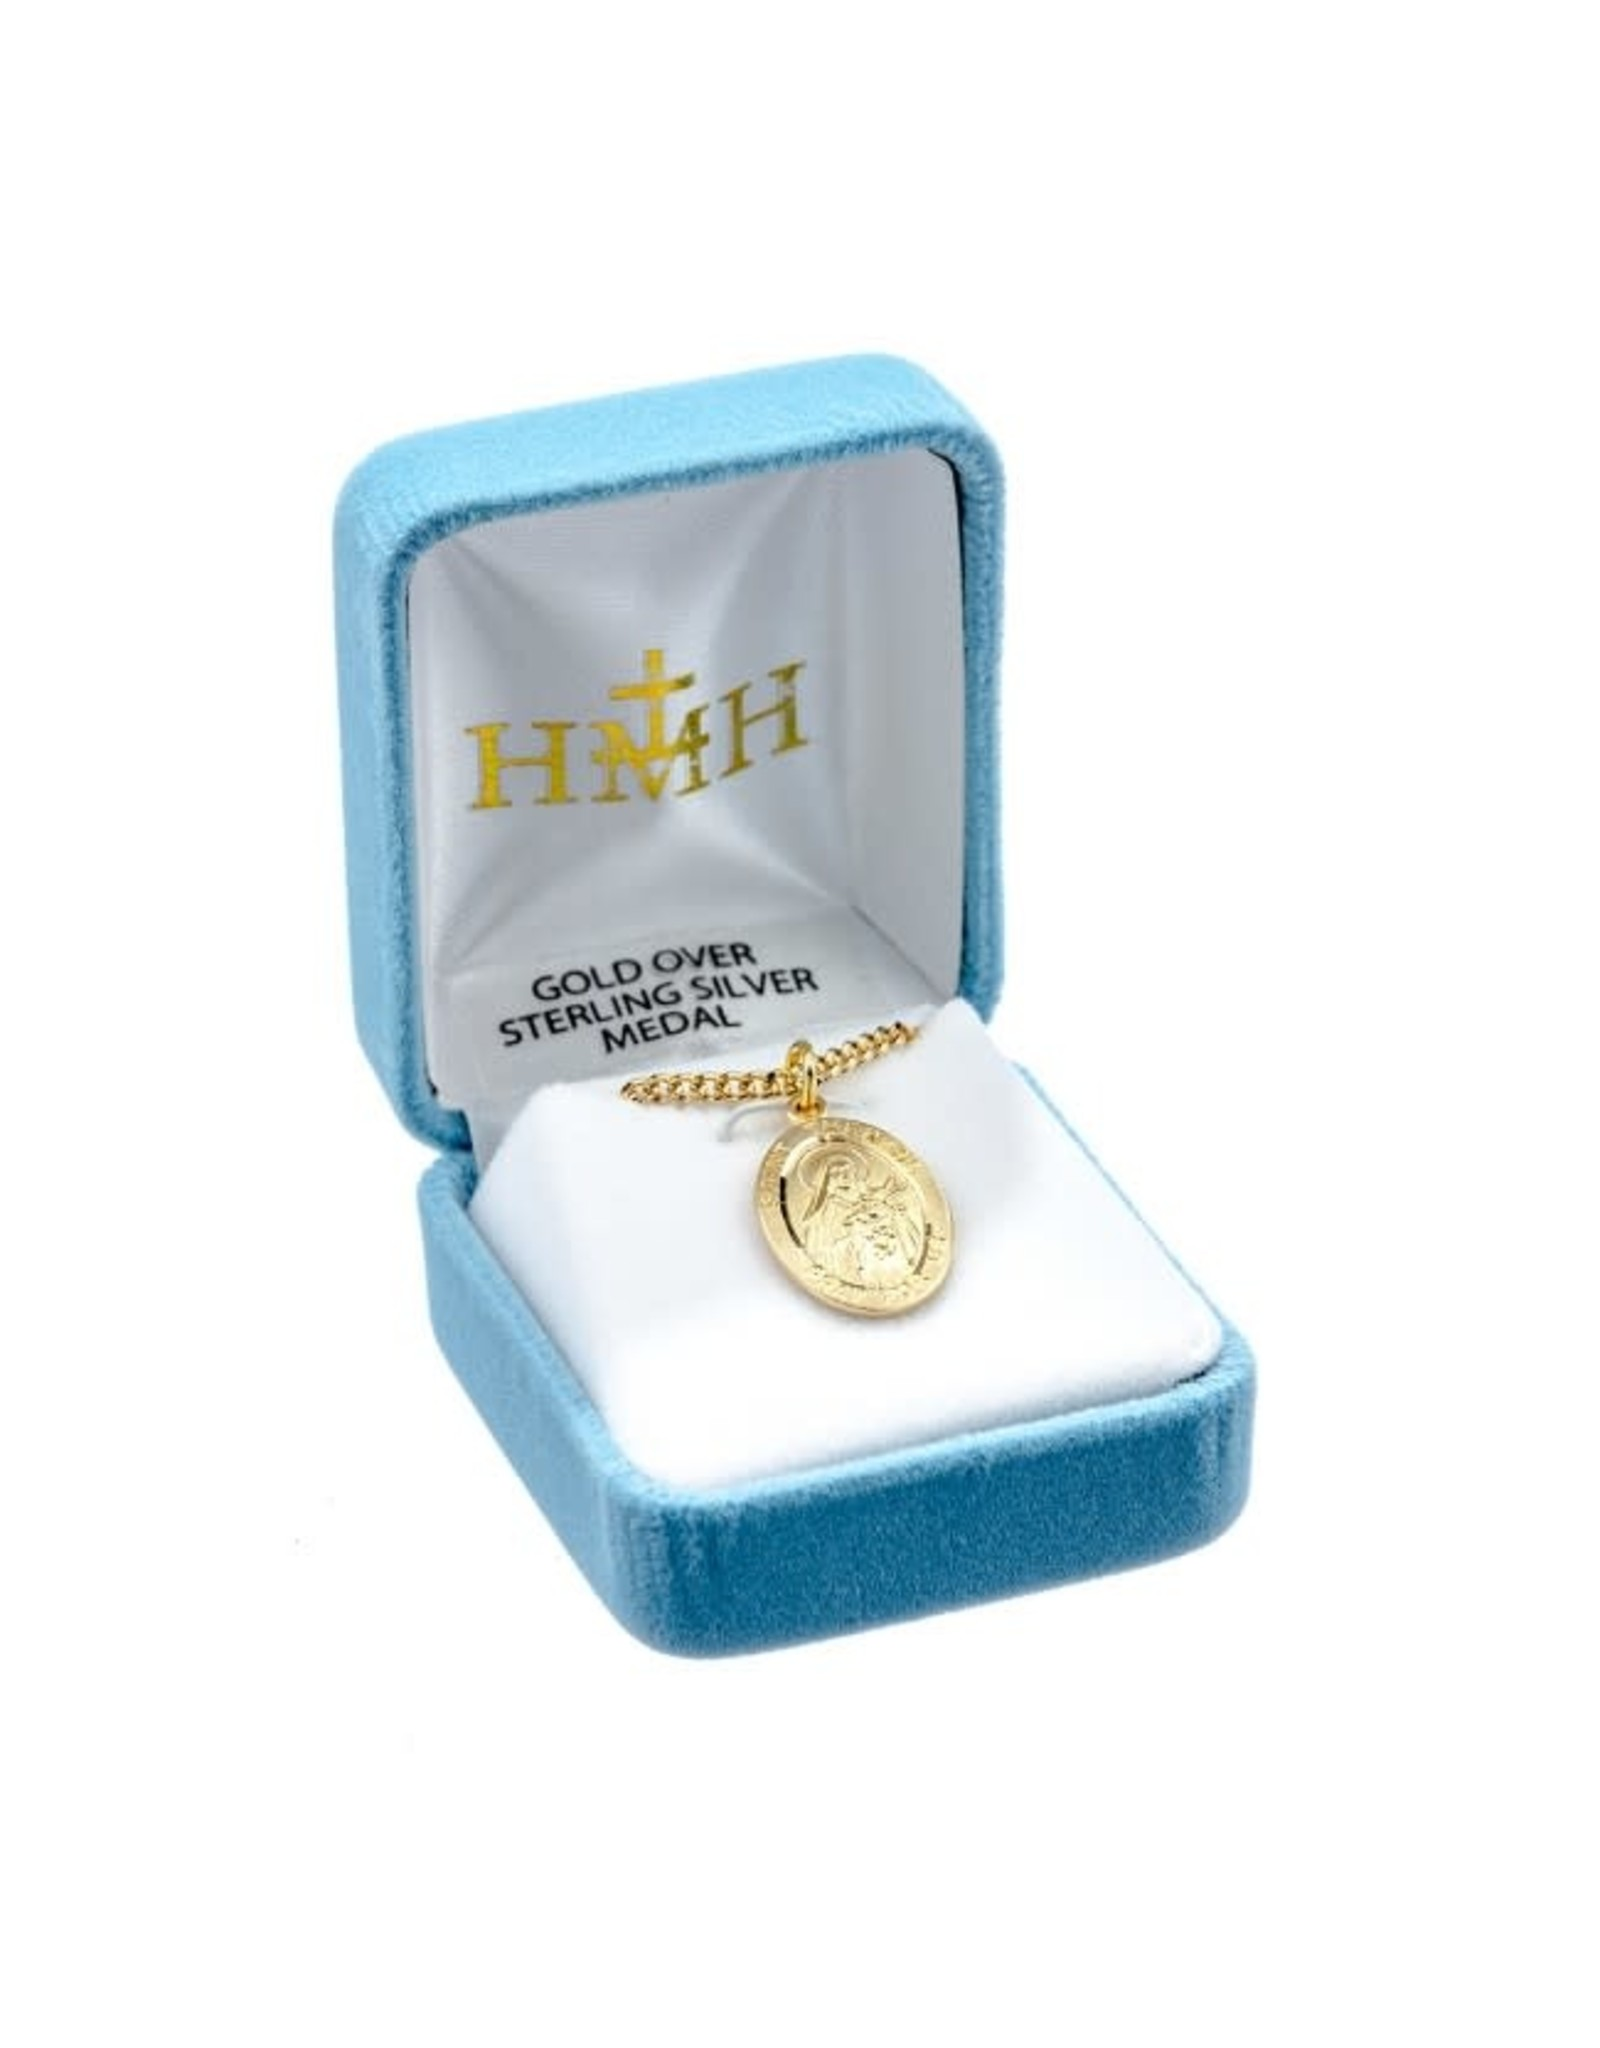 """HMH 16 Karat Gold Over Sterling Silver Oval St. Therese Medal on 18"""" Chain, Boxed"""